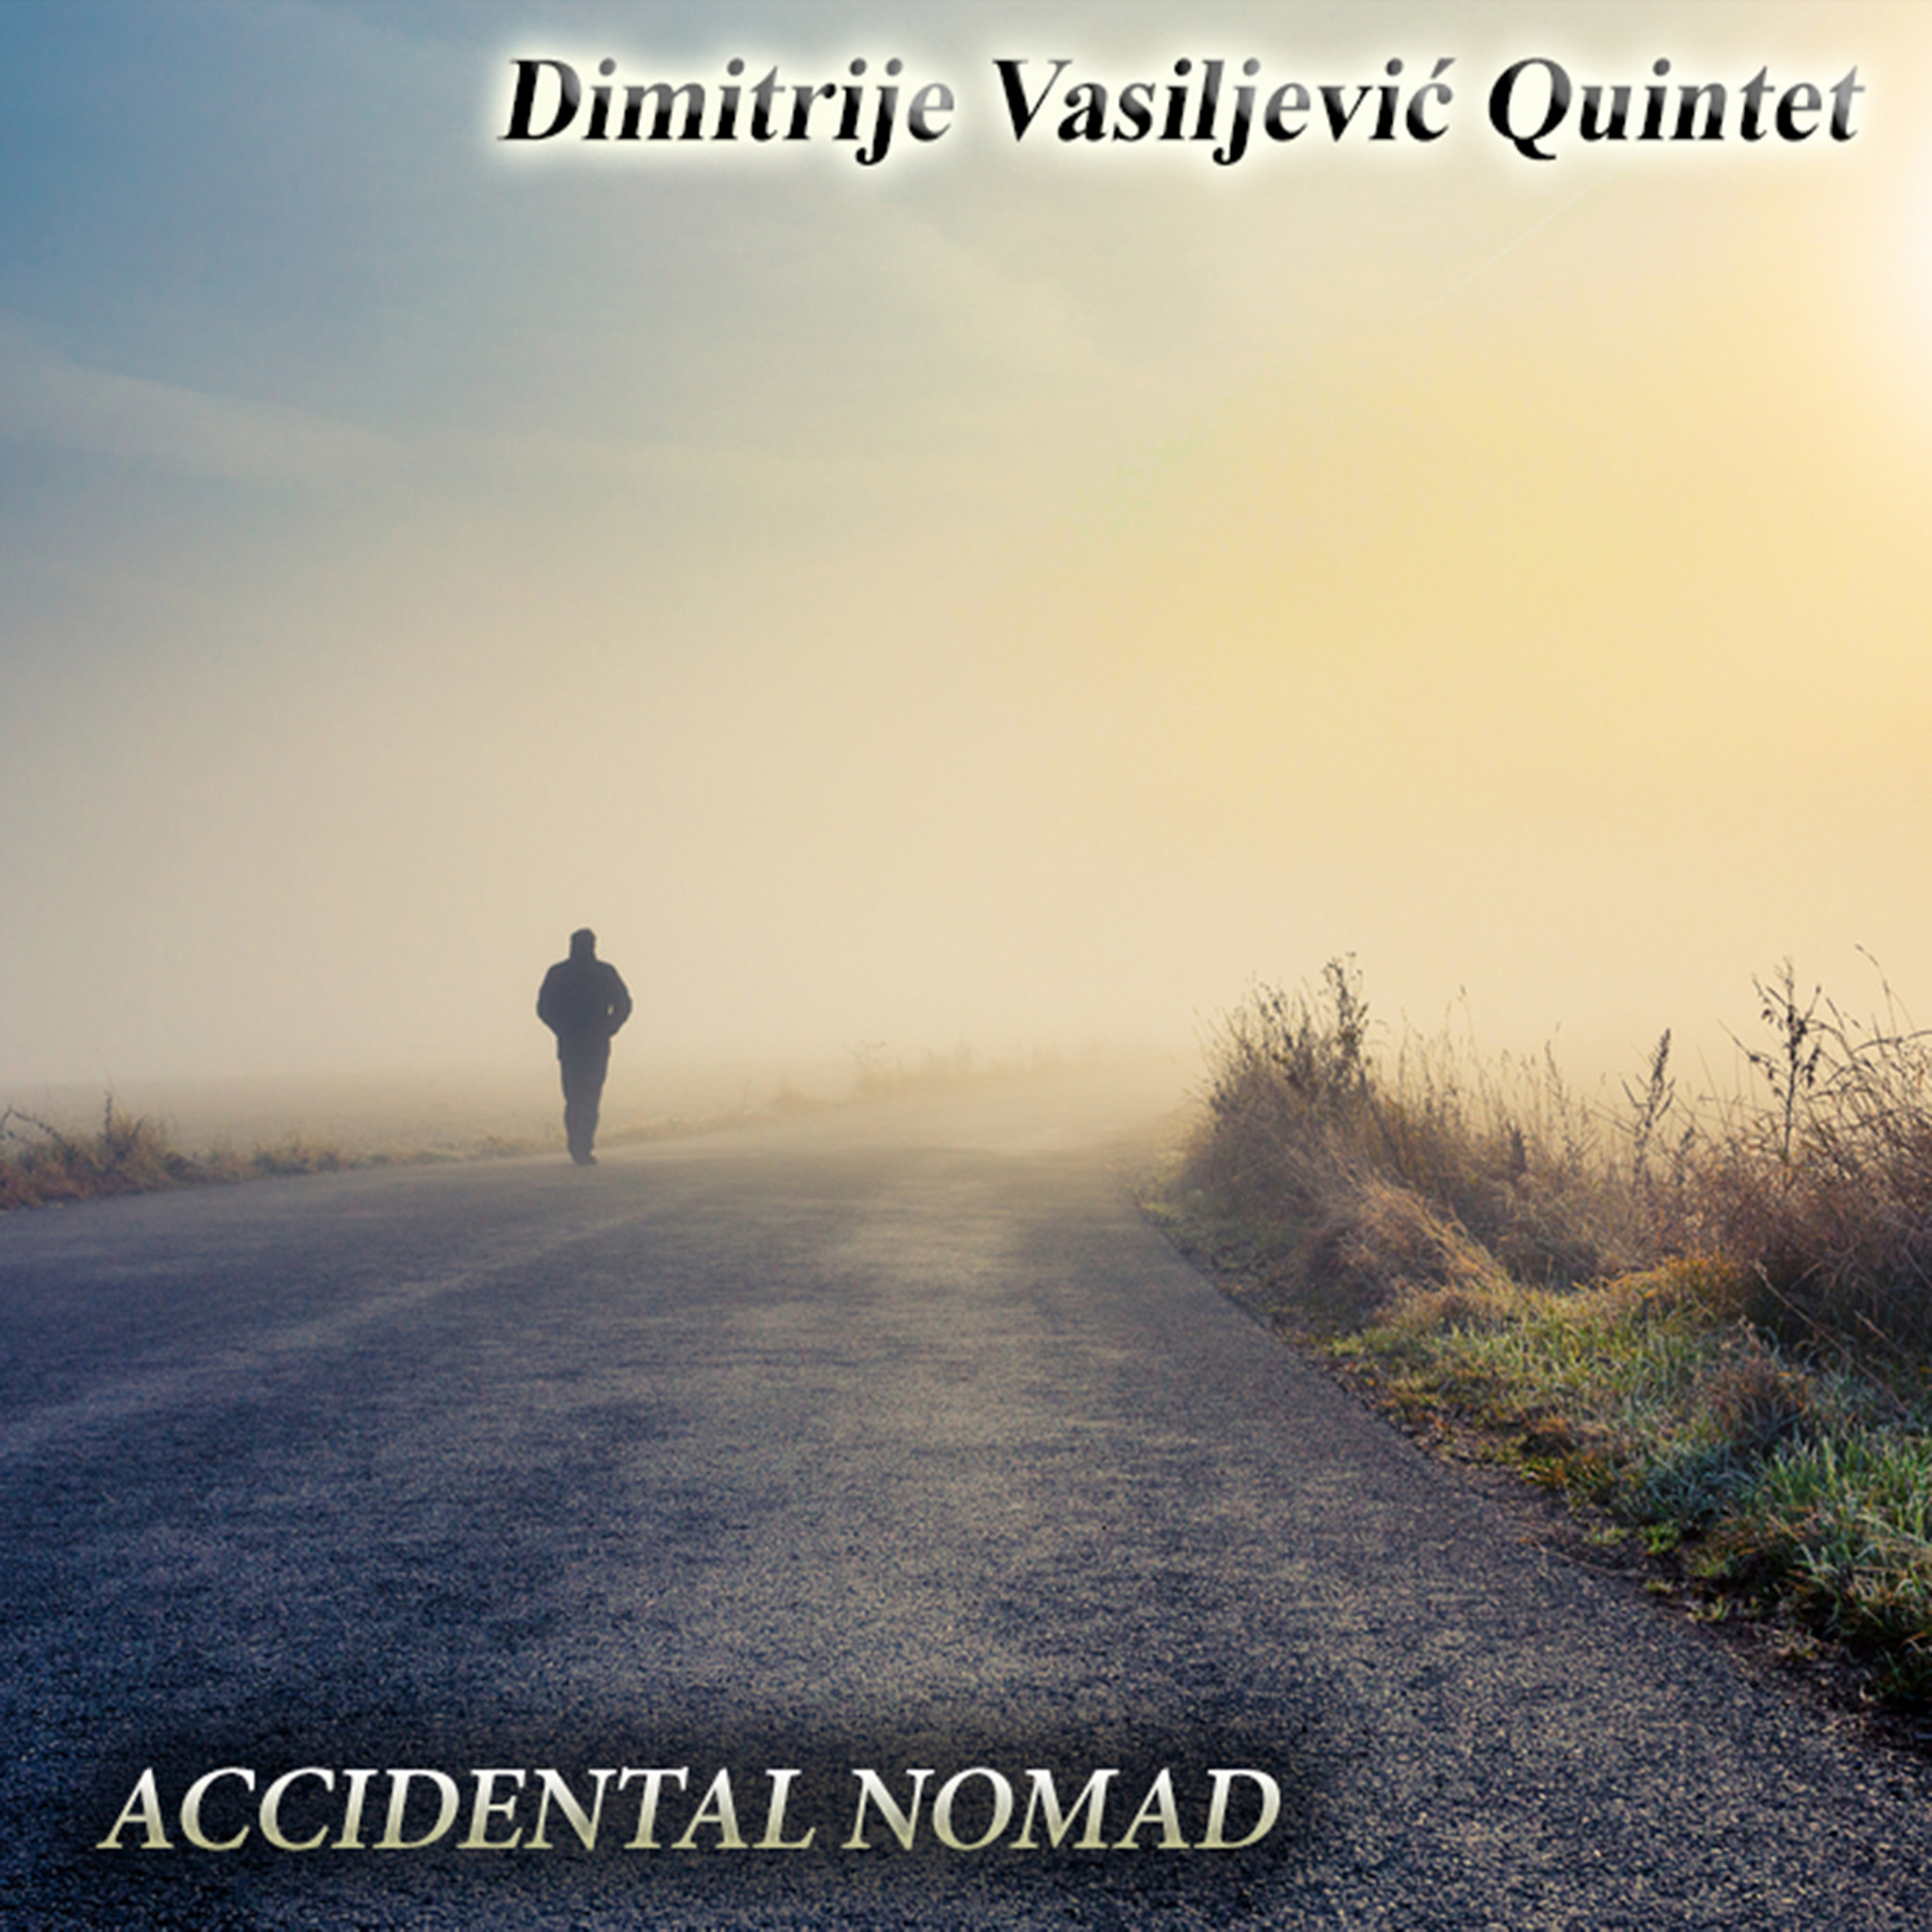 Accidental Nomad (2018) - COMING SOON